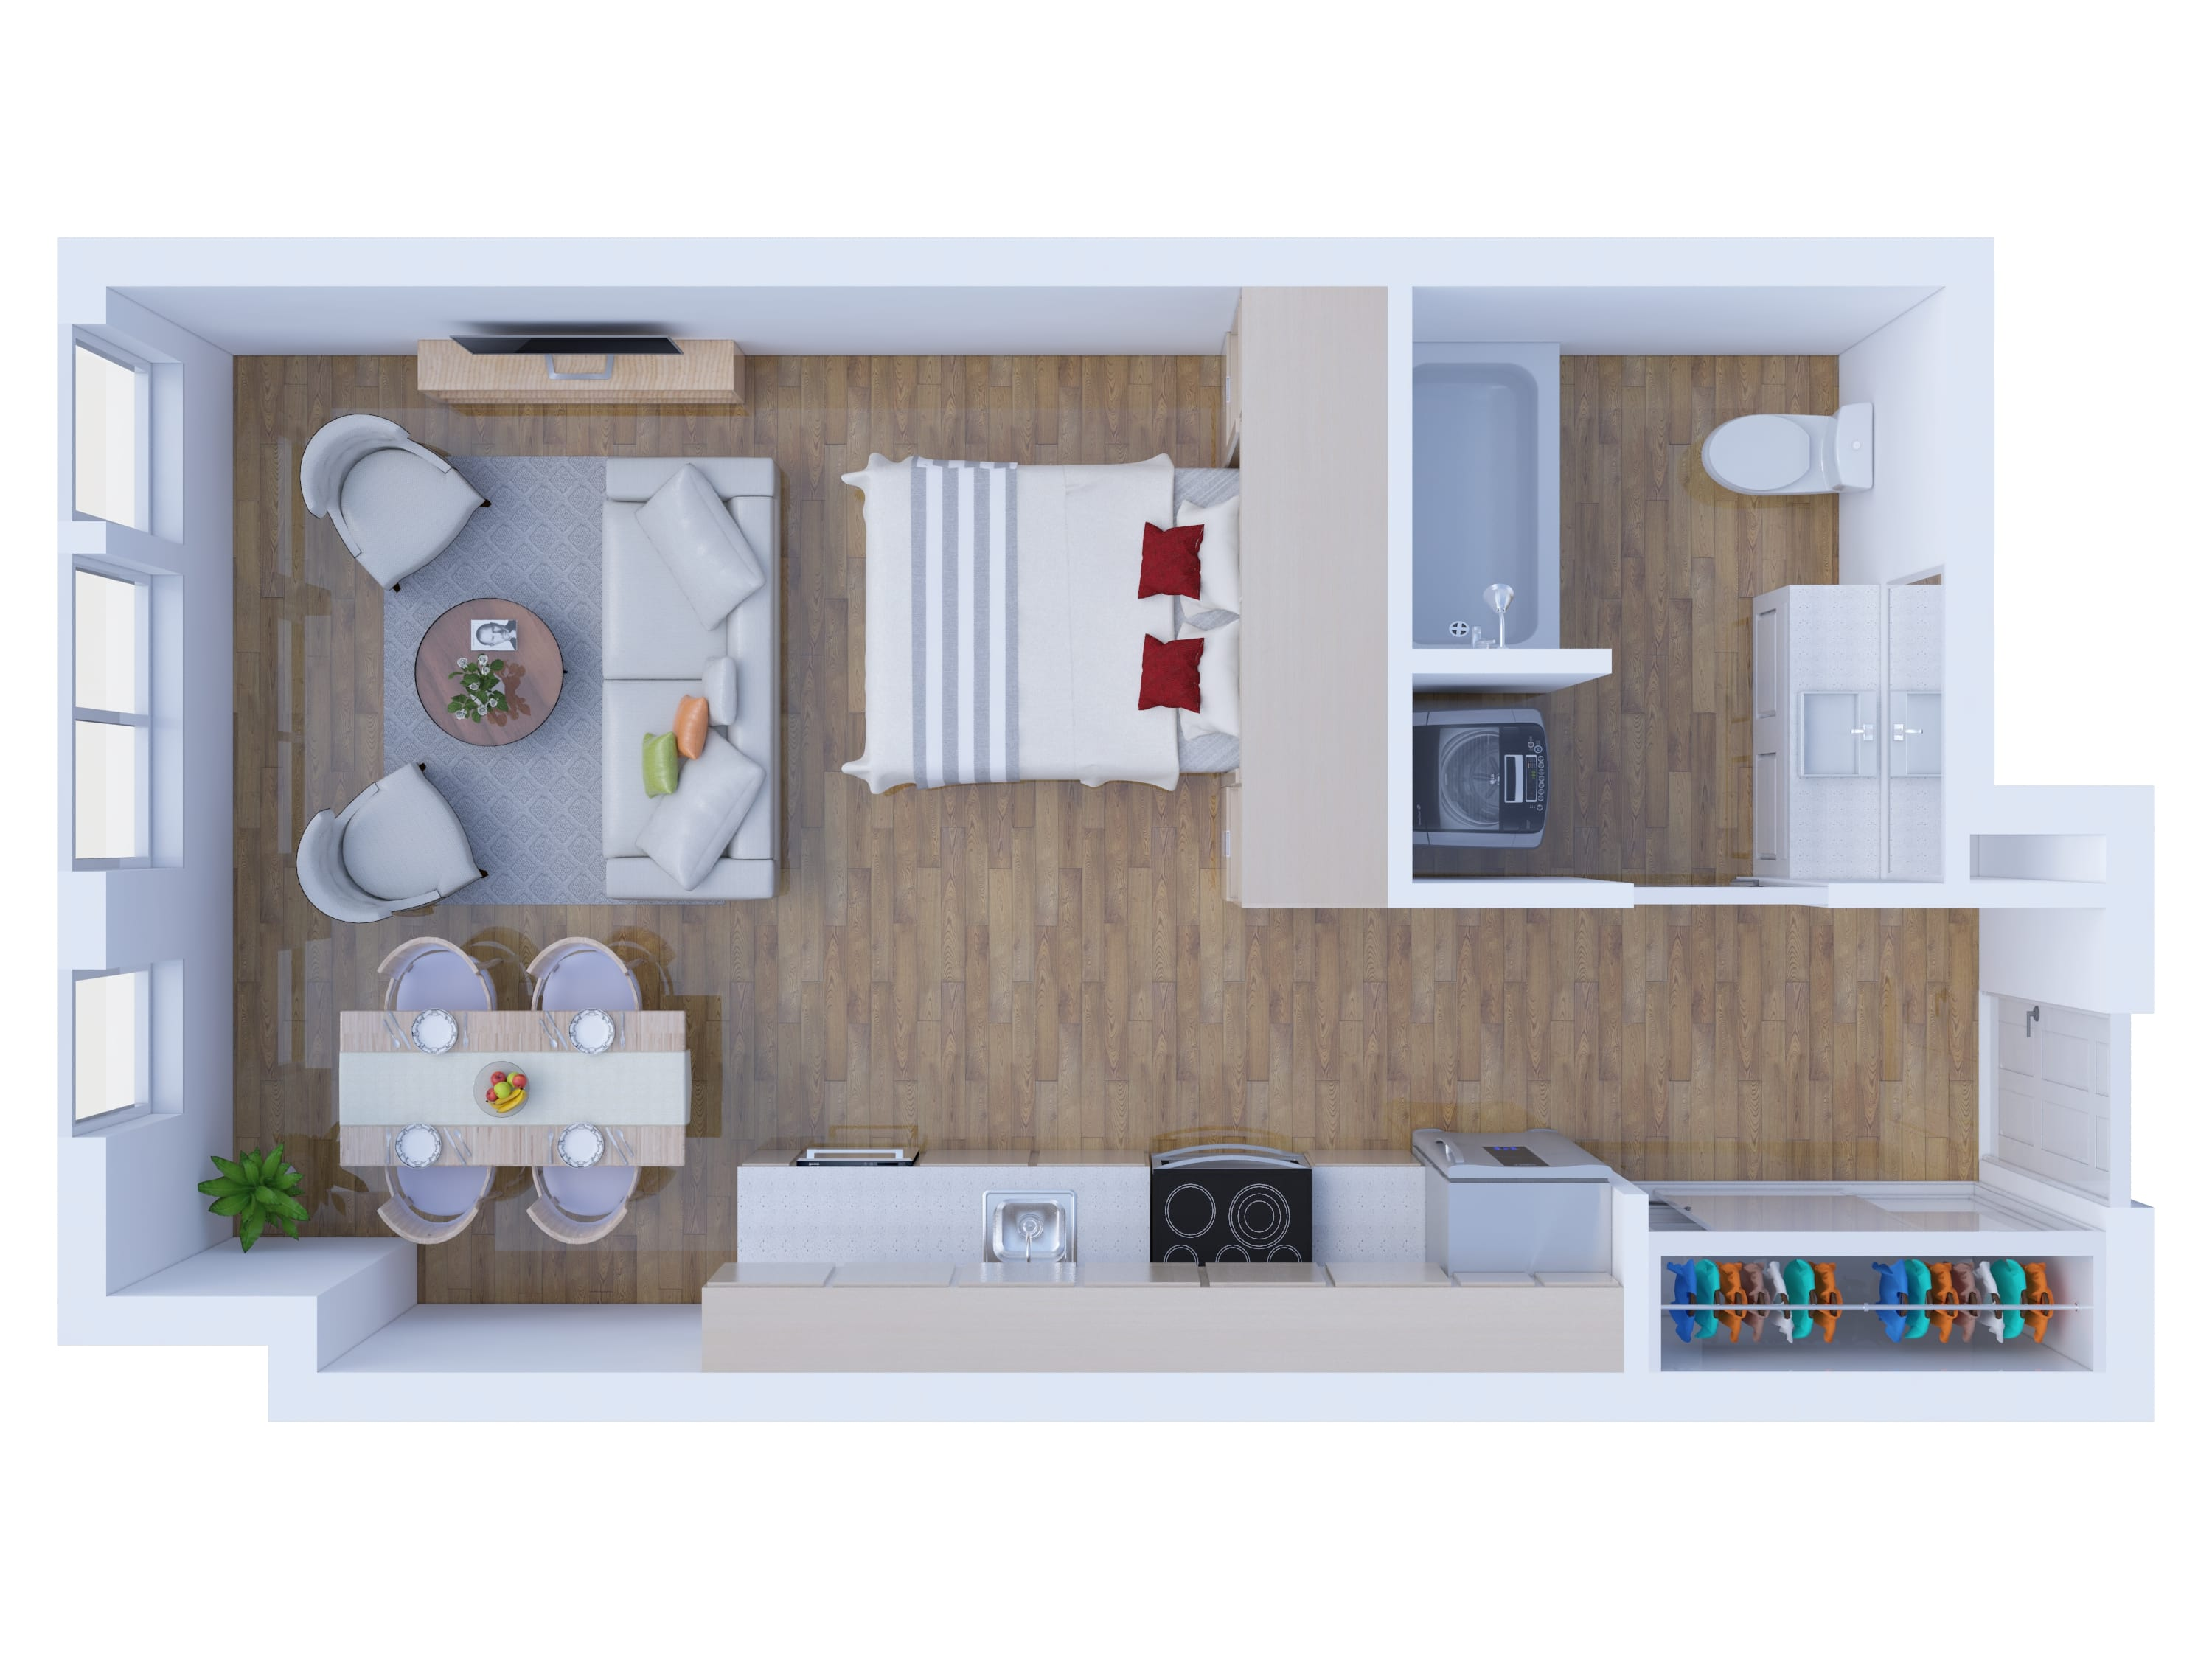 studio, 1, 2 & 3 bedroom apartment floor plans - 2d and 3d